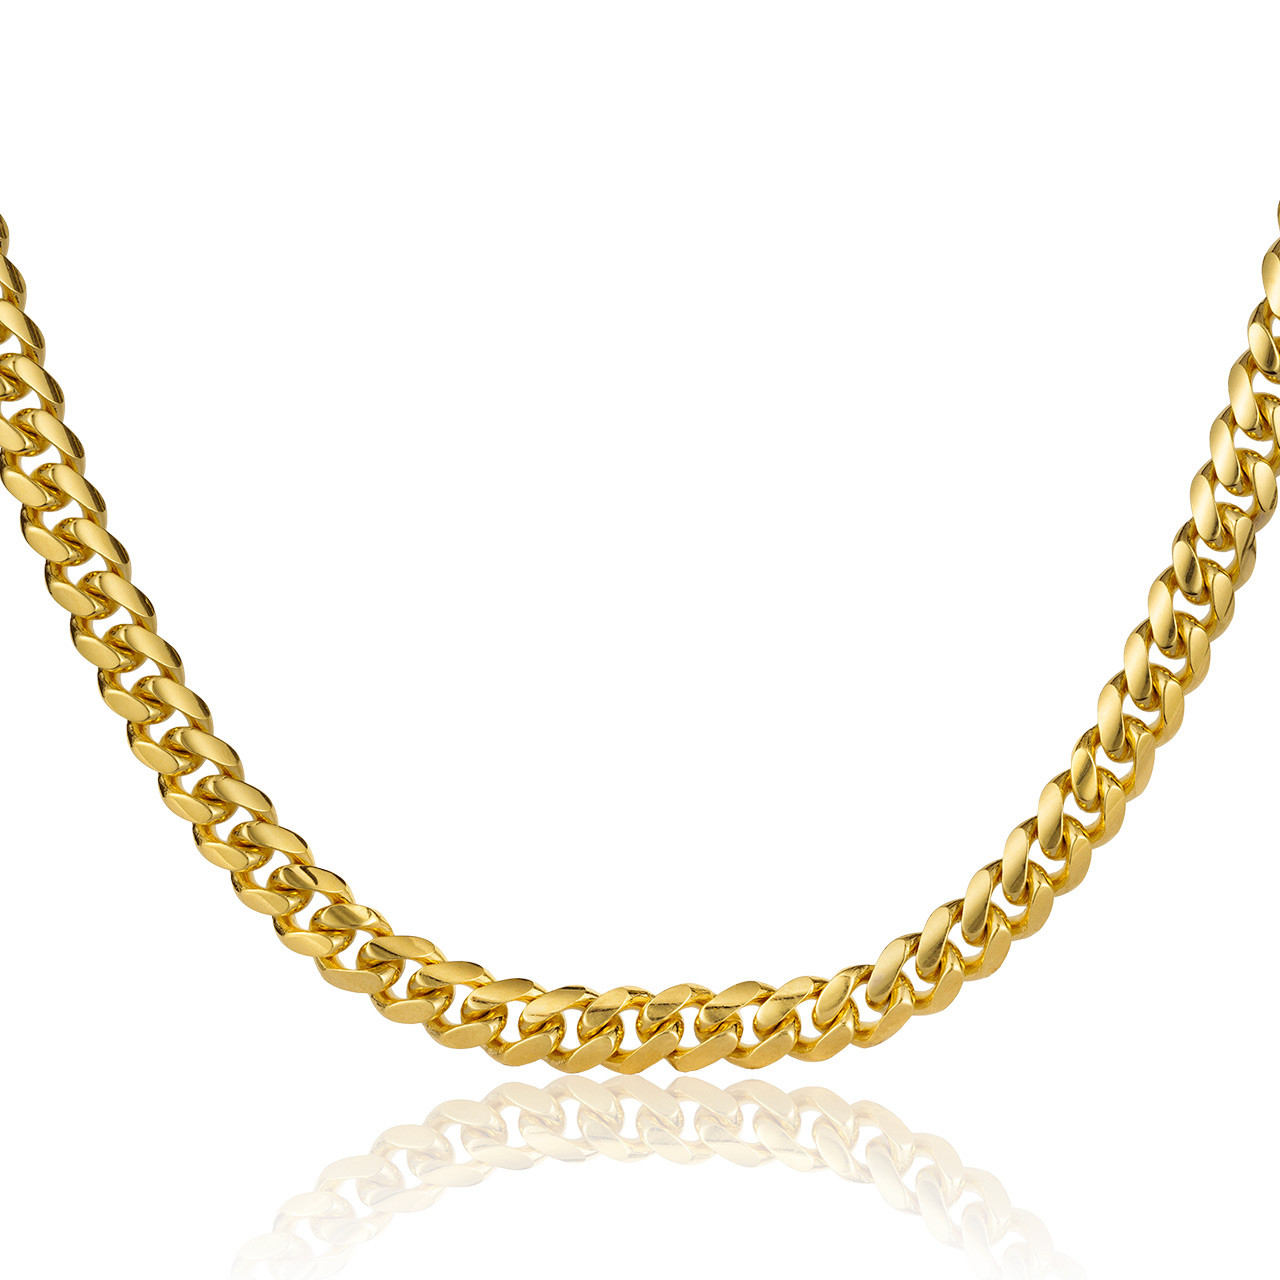 4f582229b 10k Miami Cuban Link Chain (5mm) - Shyne Jewelers